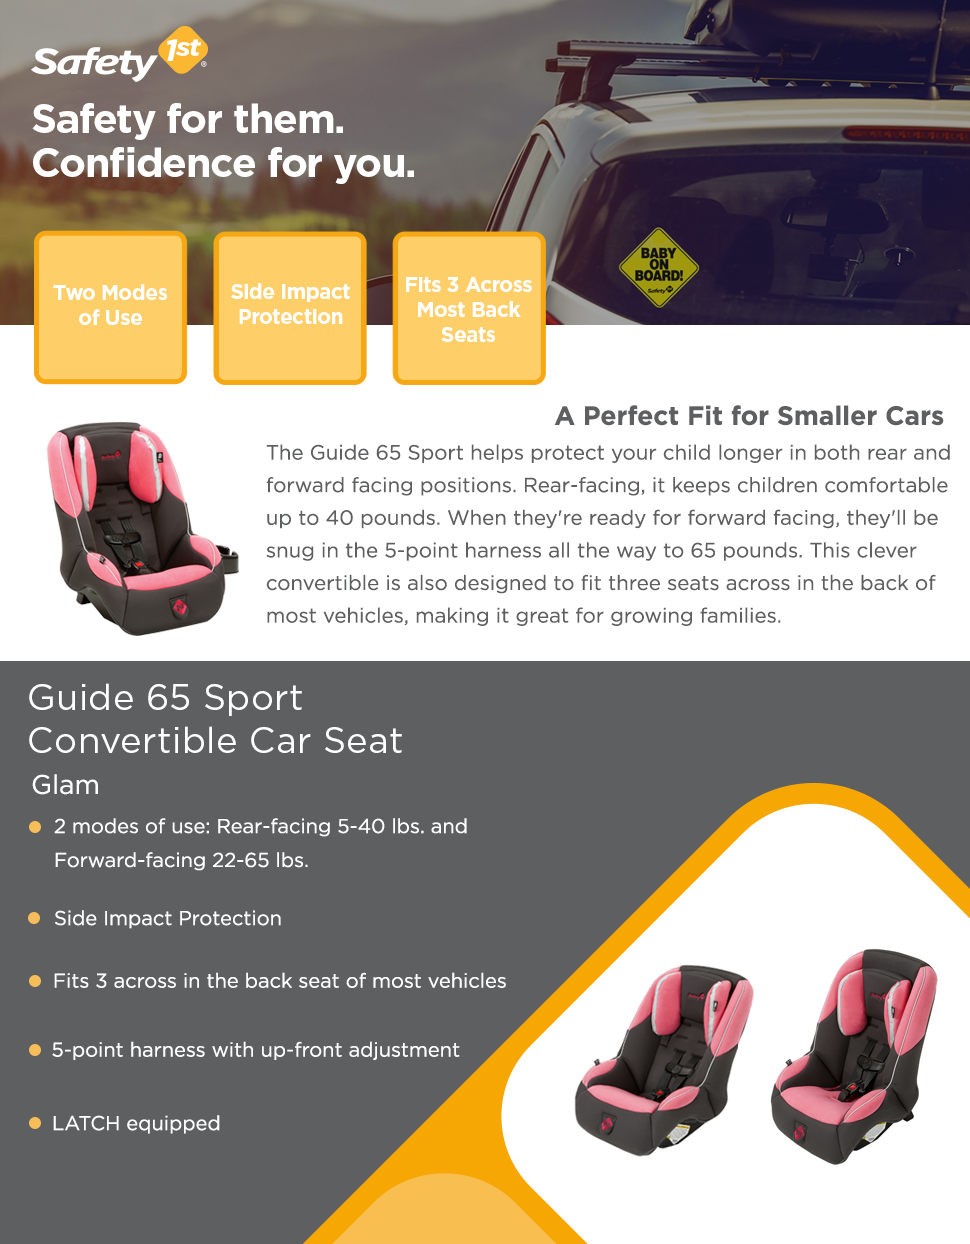 The Guide 65 Sport Is Perfect Fit For Smaller Cars And Helps Protect Your Child Longer In Both Rear Forward Facing Positions